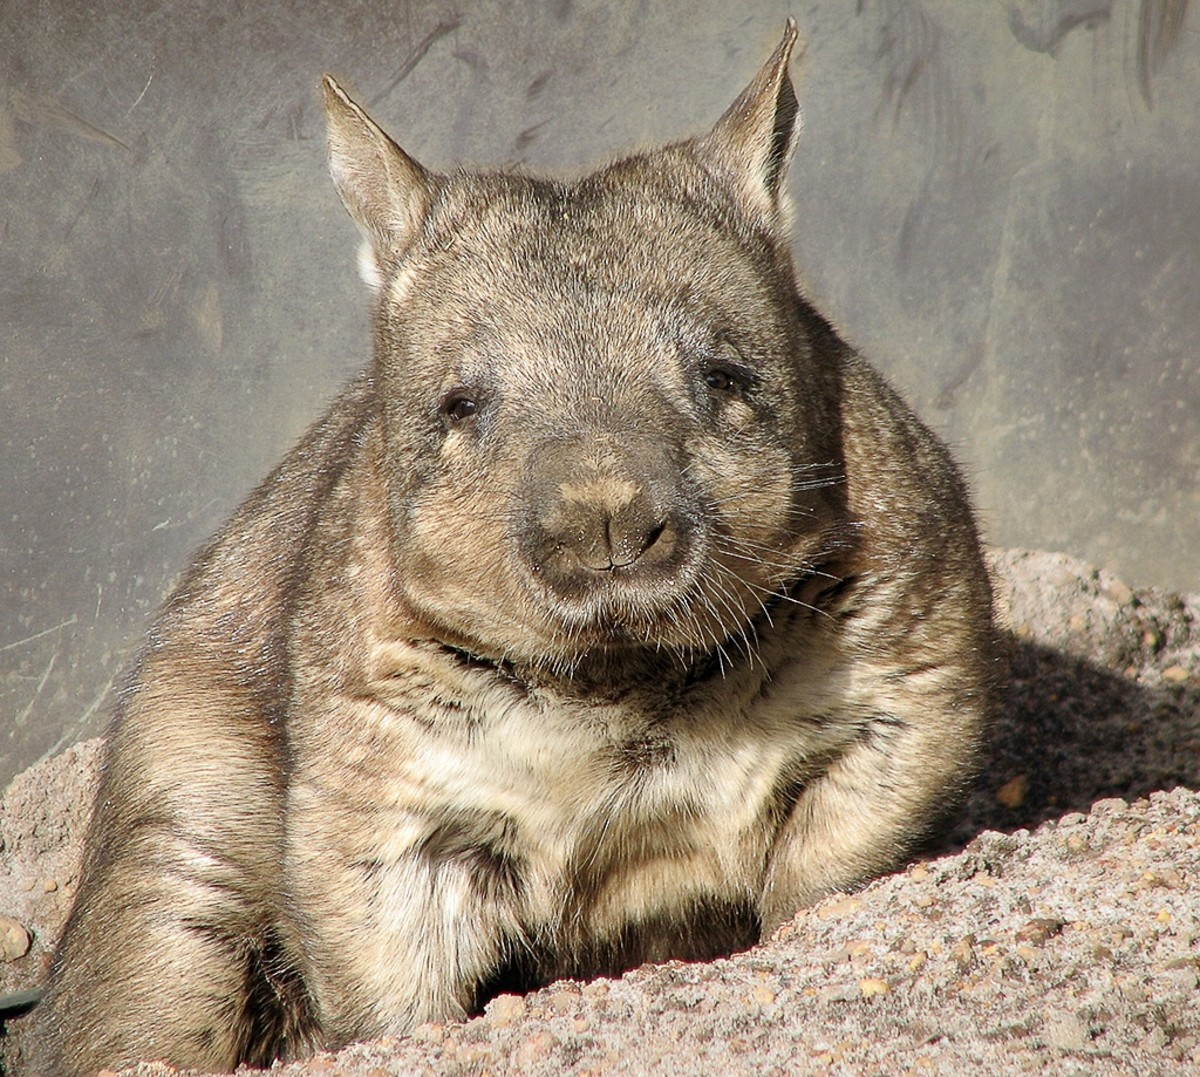 A southern hairy-nosed wombat